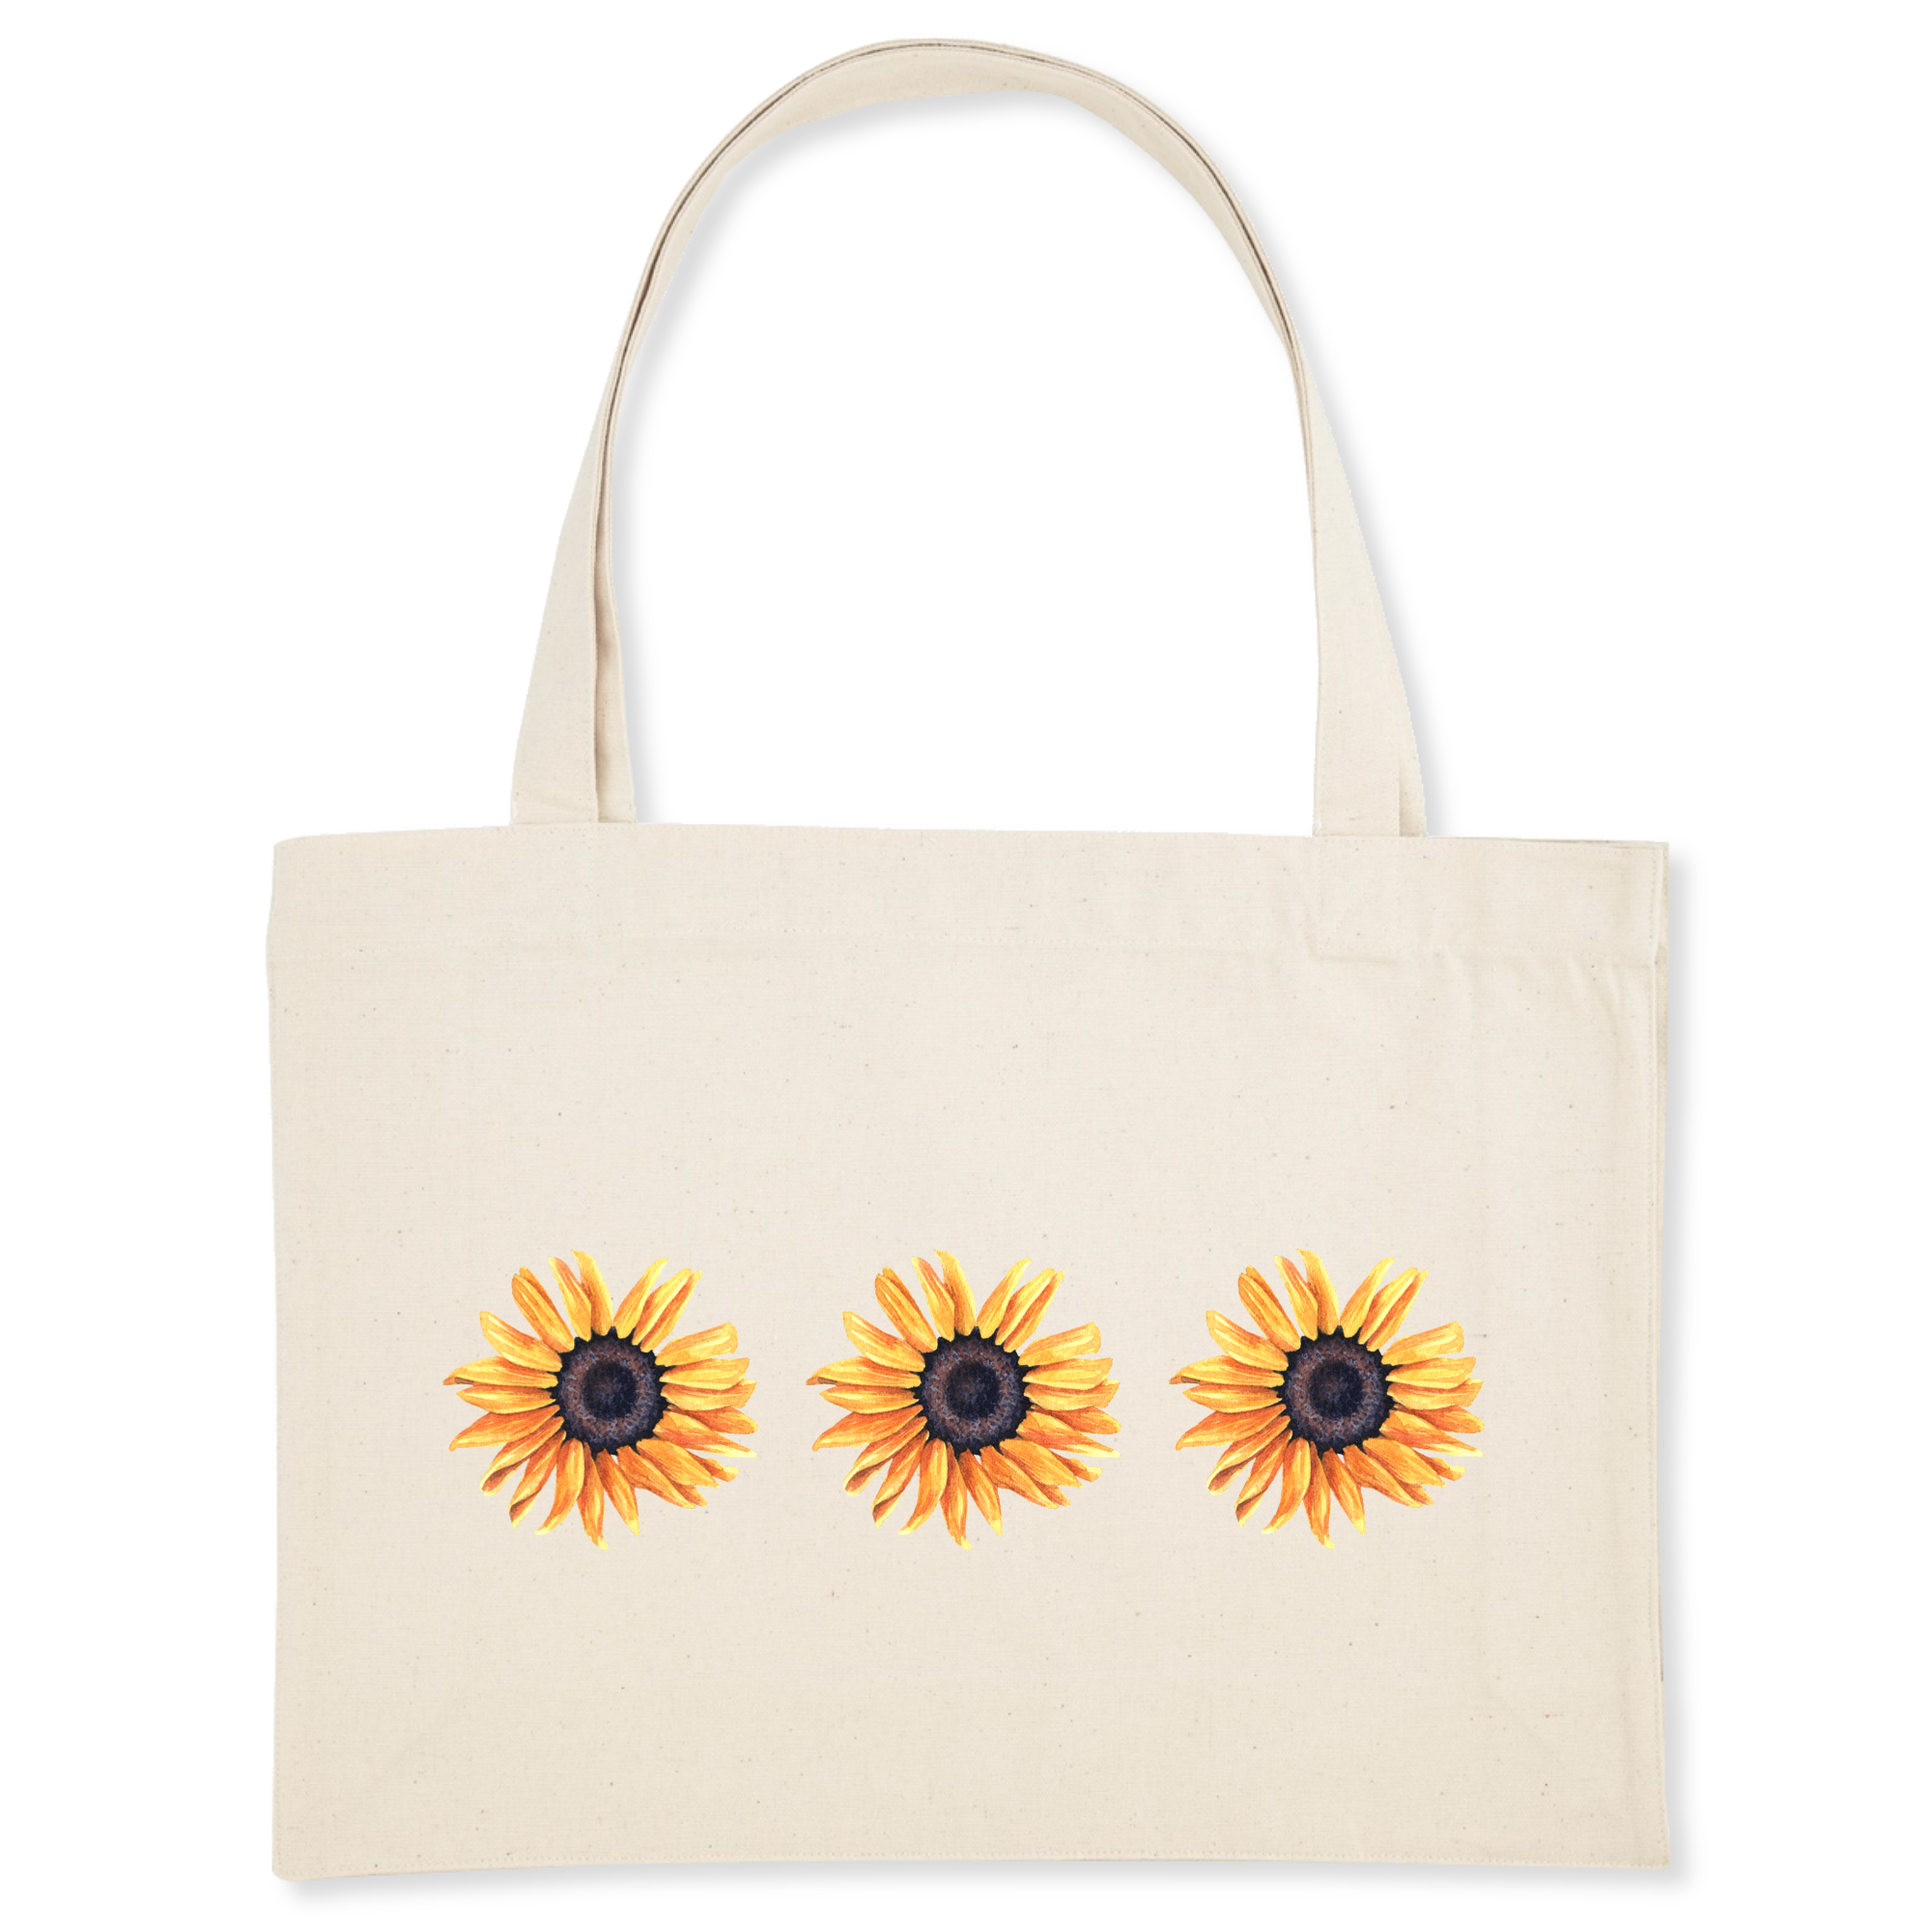 Recycled Cotton Sunflower Shopping bag